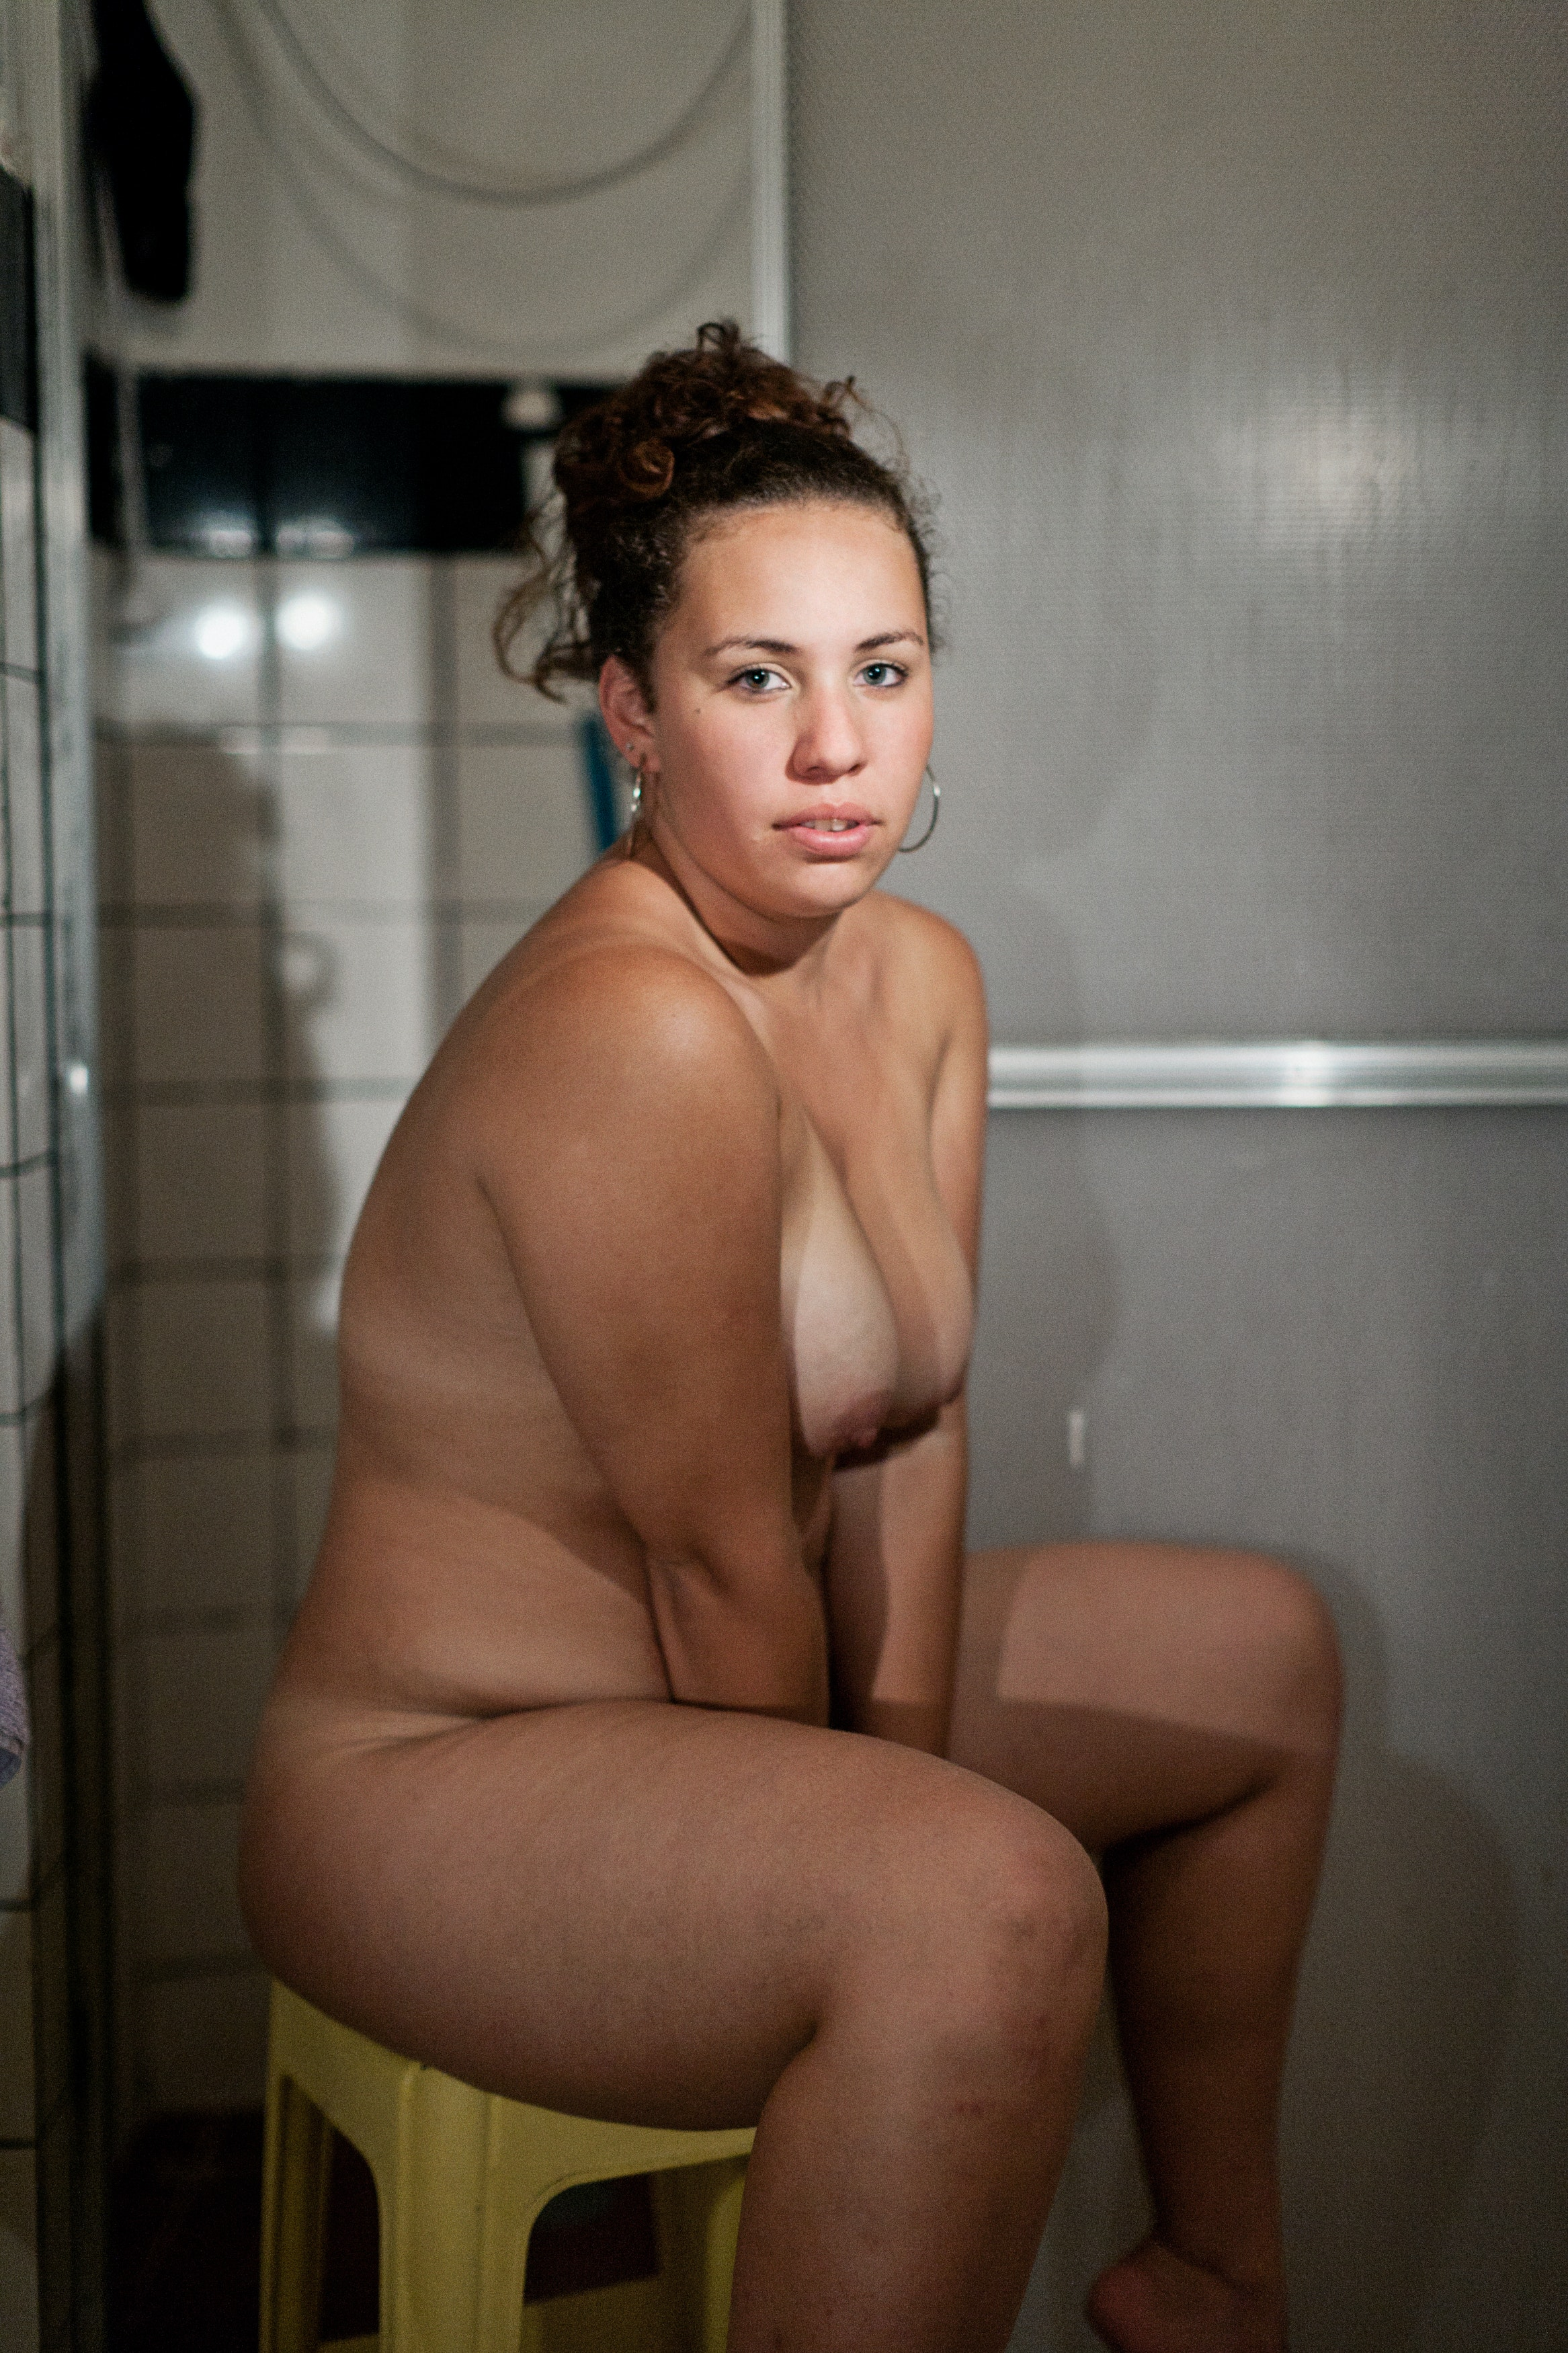 Nude photos of women from south america can suggest